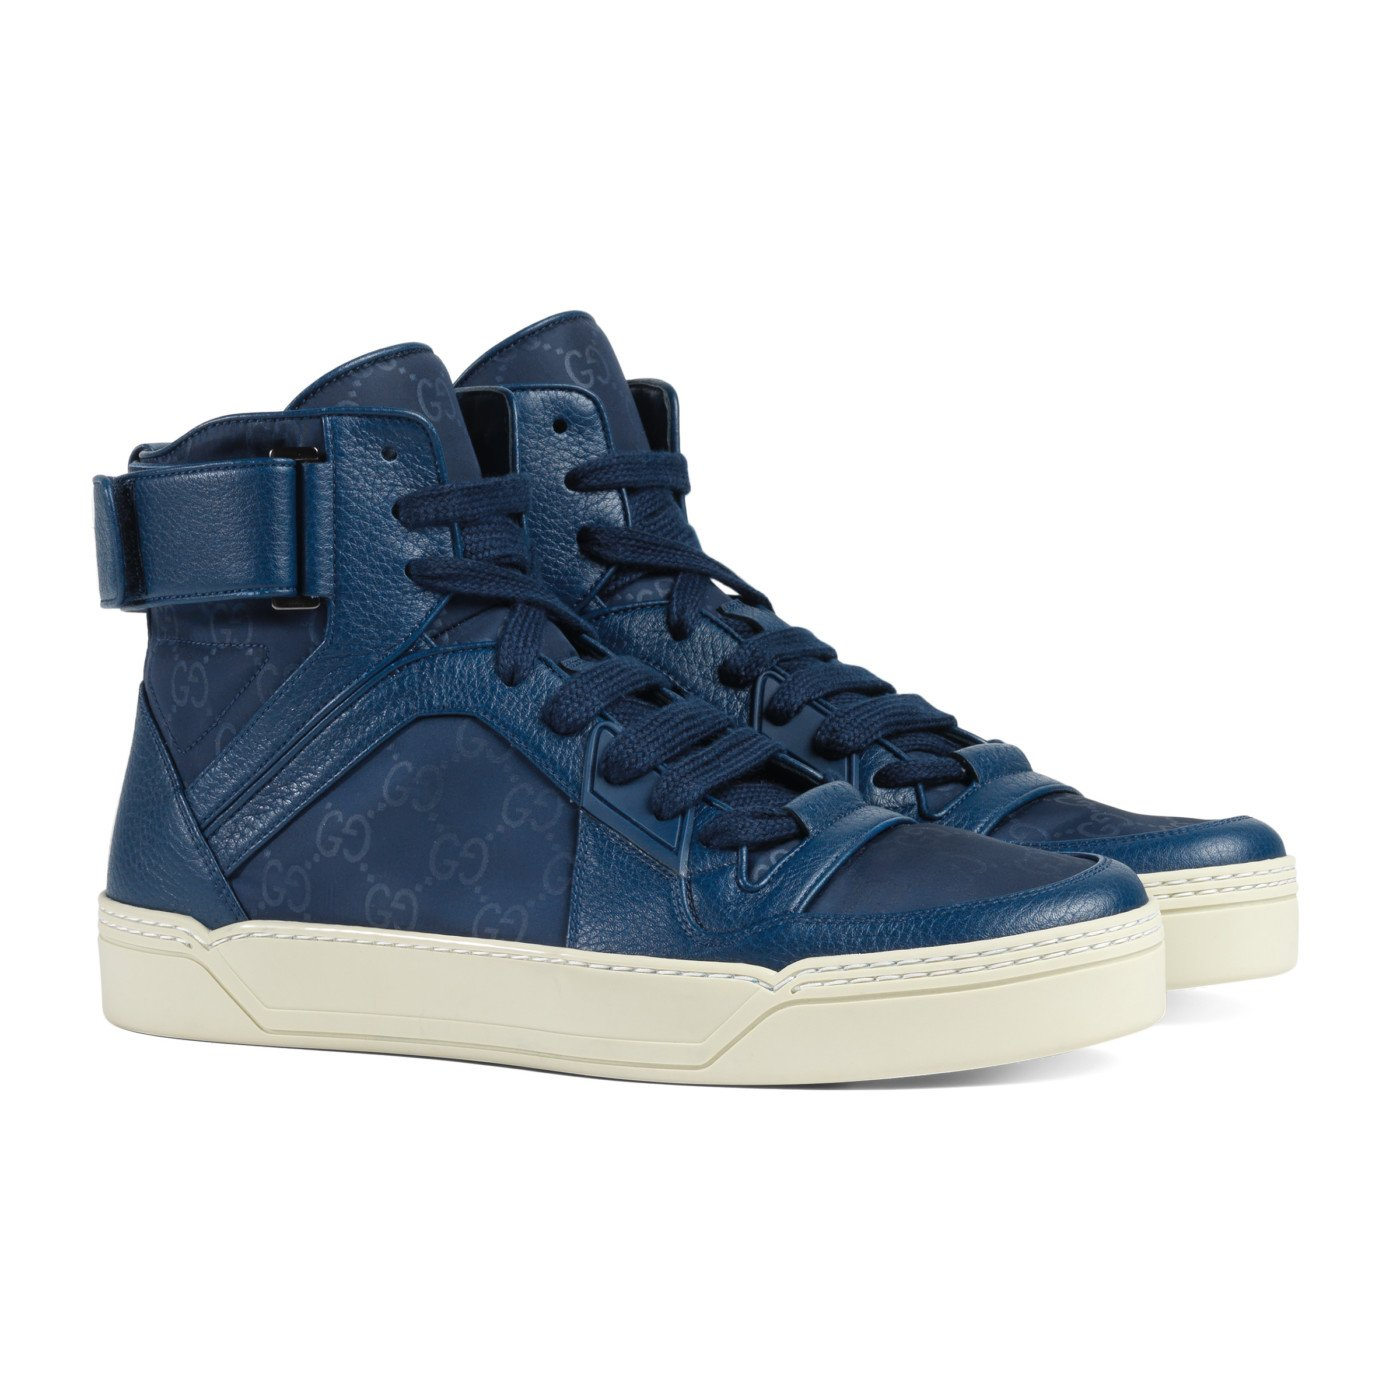 b0126f395 Amazon.com: Gucci Men's Blue Nylon Leather GG Guccissima High Top Sneakers  Shoes, Blue, US 8.5 7.5: Shoes